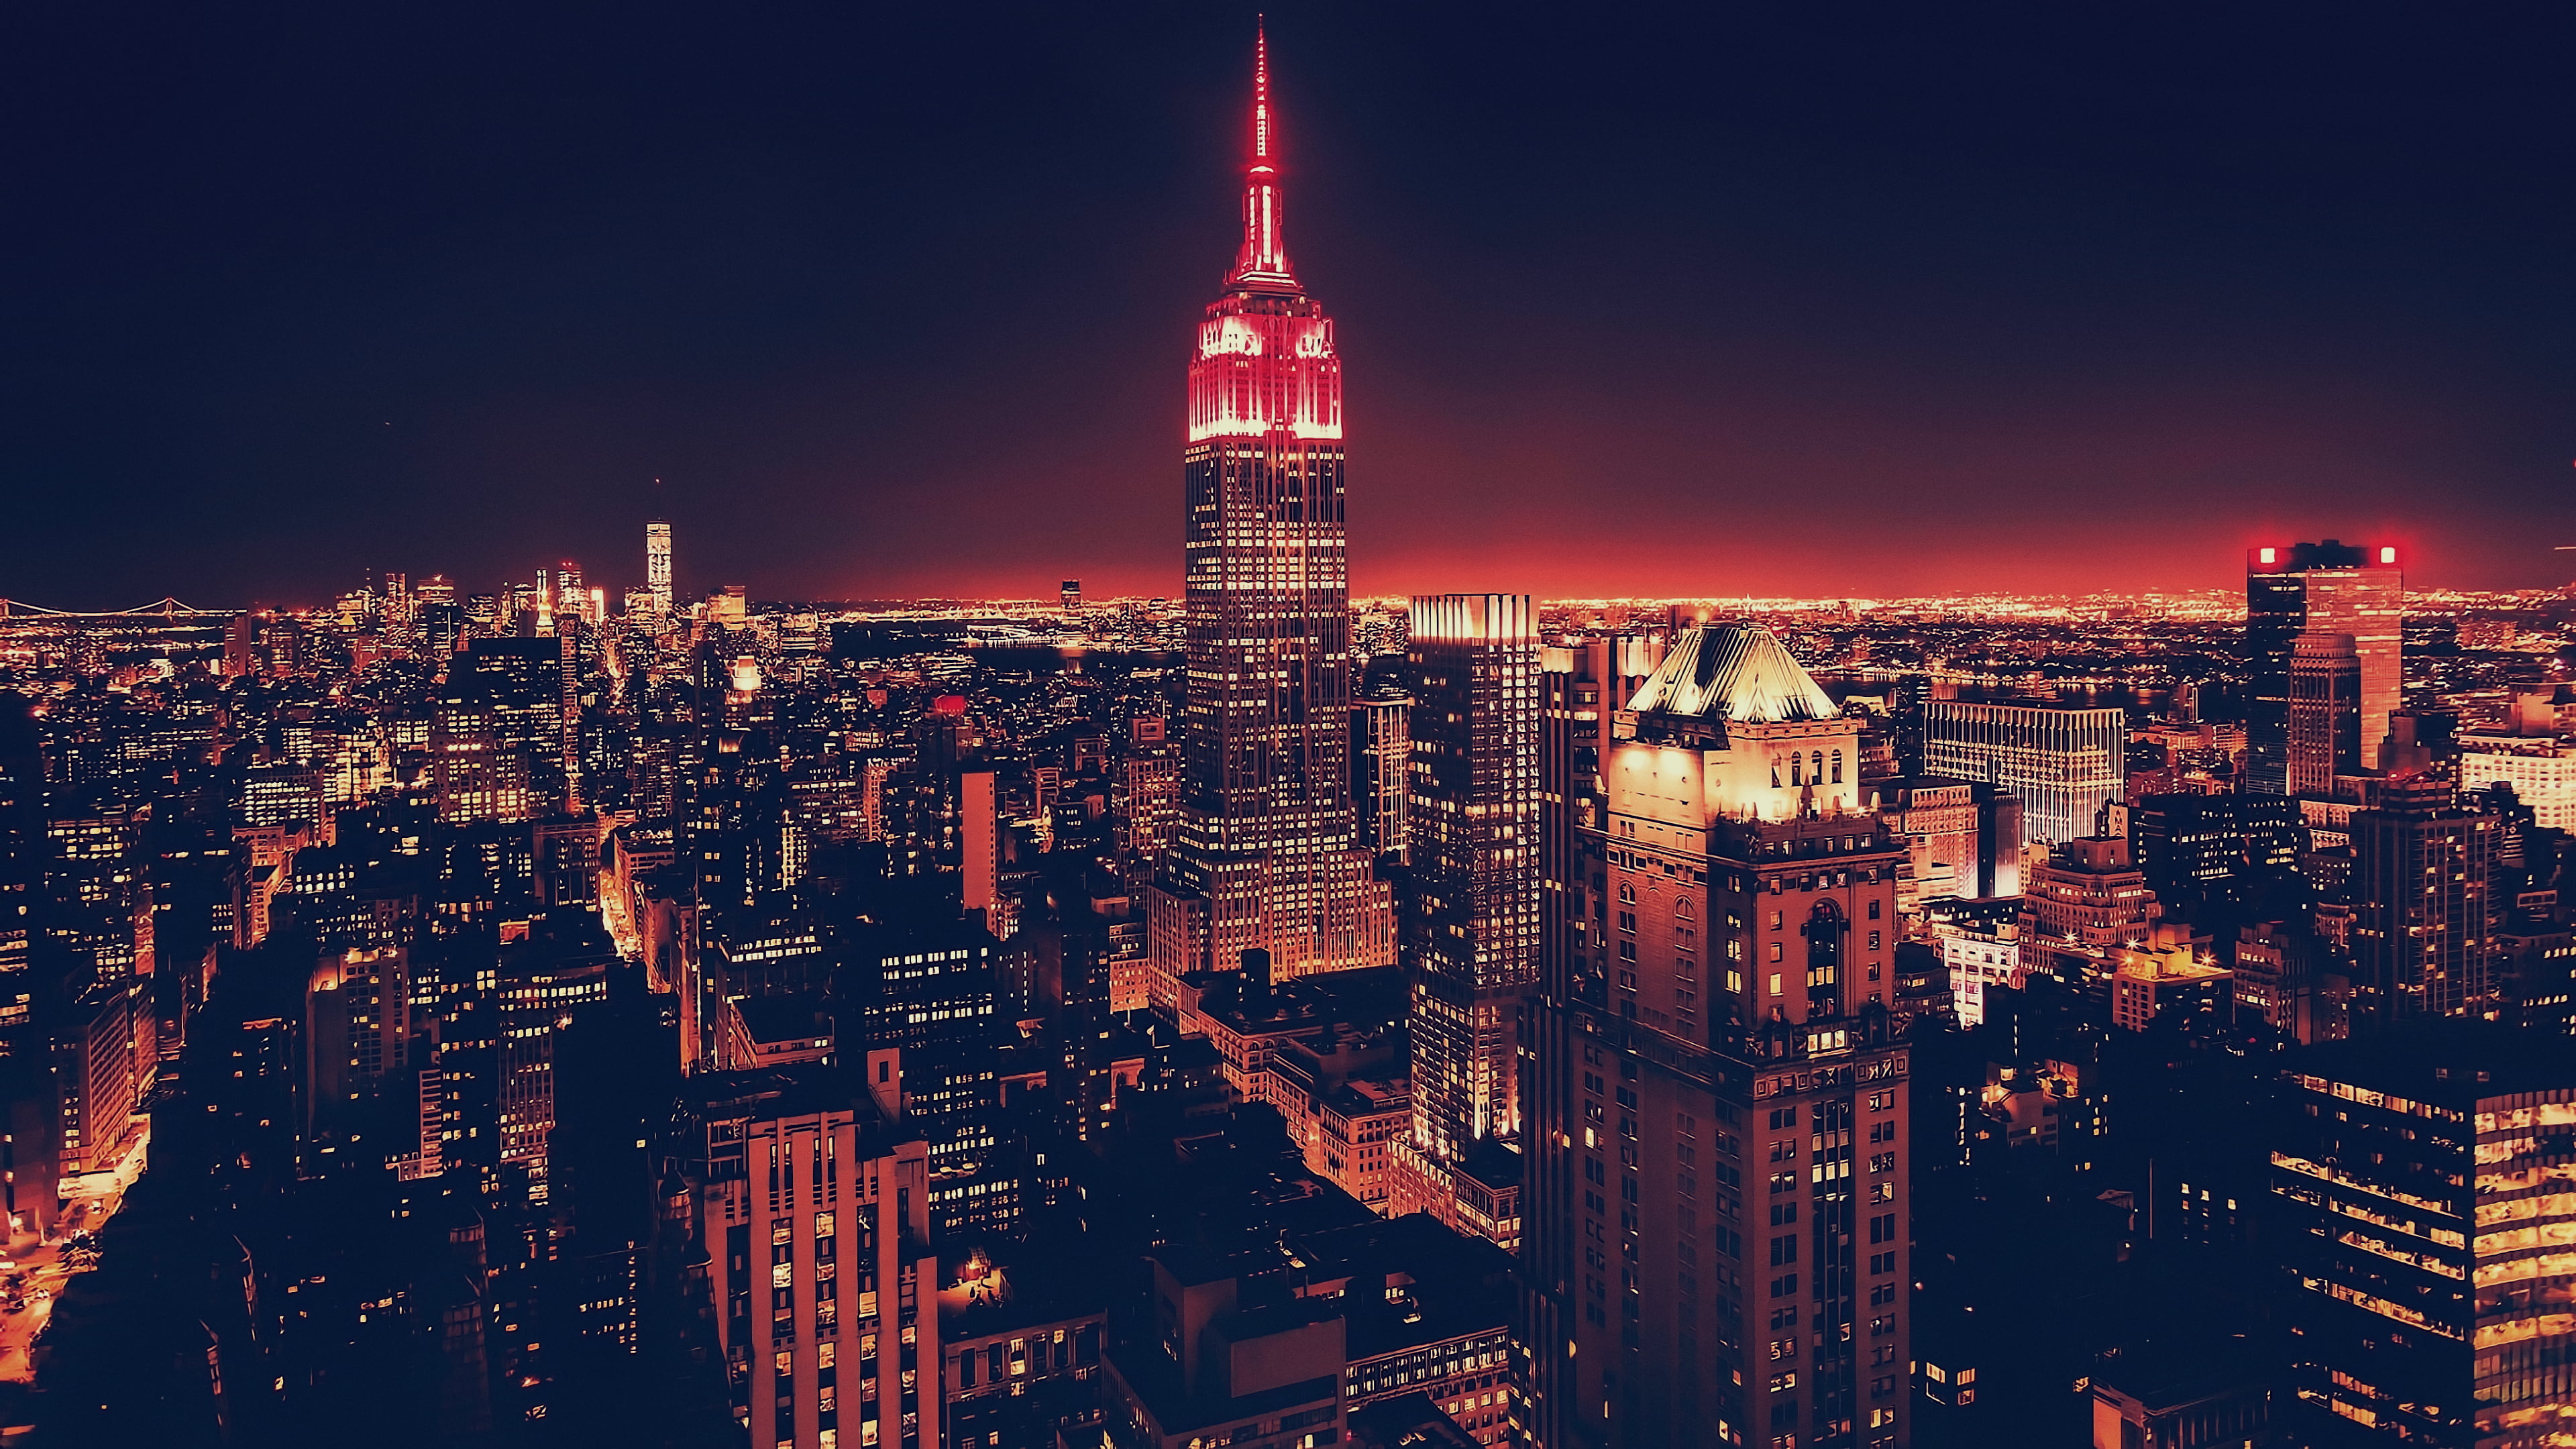 Empire State Building Cityscape Usa Night New York City Manhattan Wallpaper Wallpaper For You The Best Wallpaper For Desktop Mobile City Wallpaper